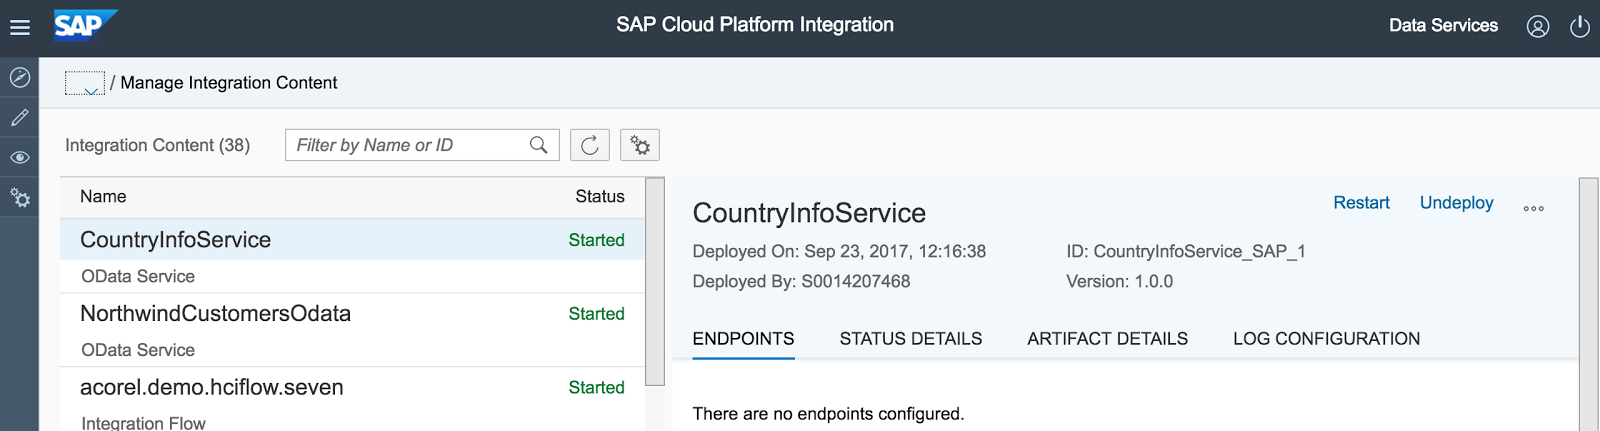 Odata Provisioning in SAP Cloud Platform Integration - Acorel